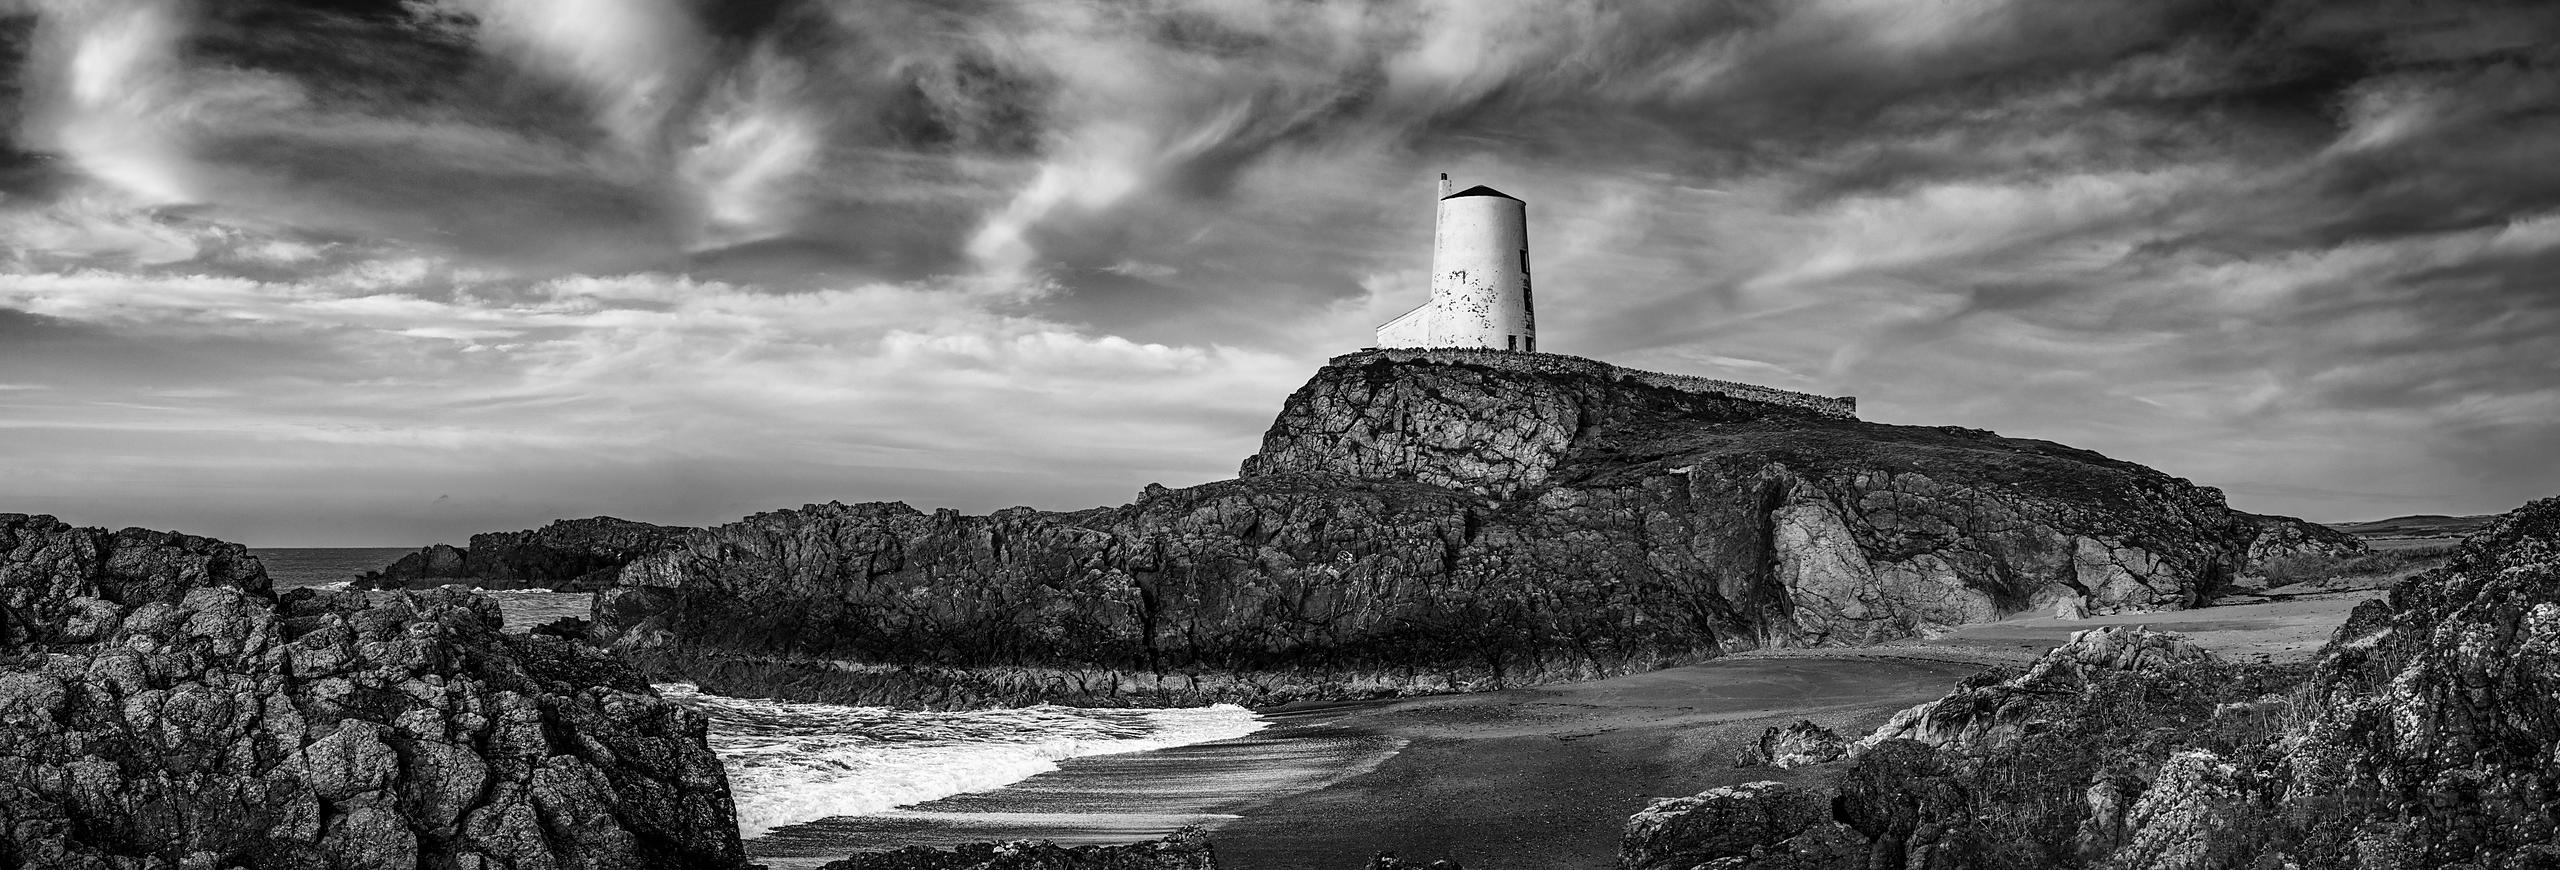 BW_Lighthouse_Beach_pano